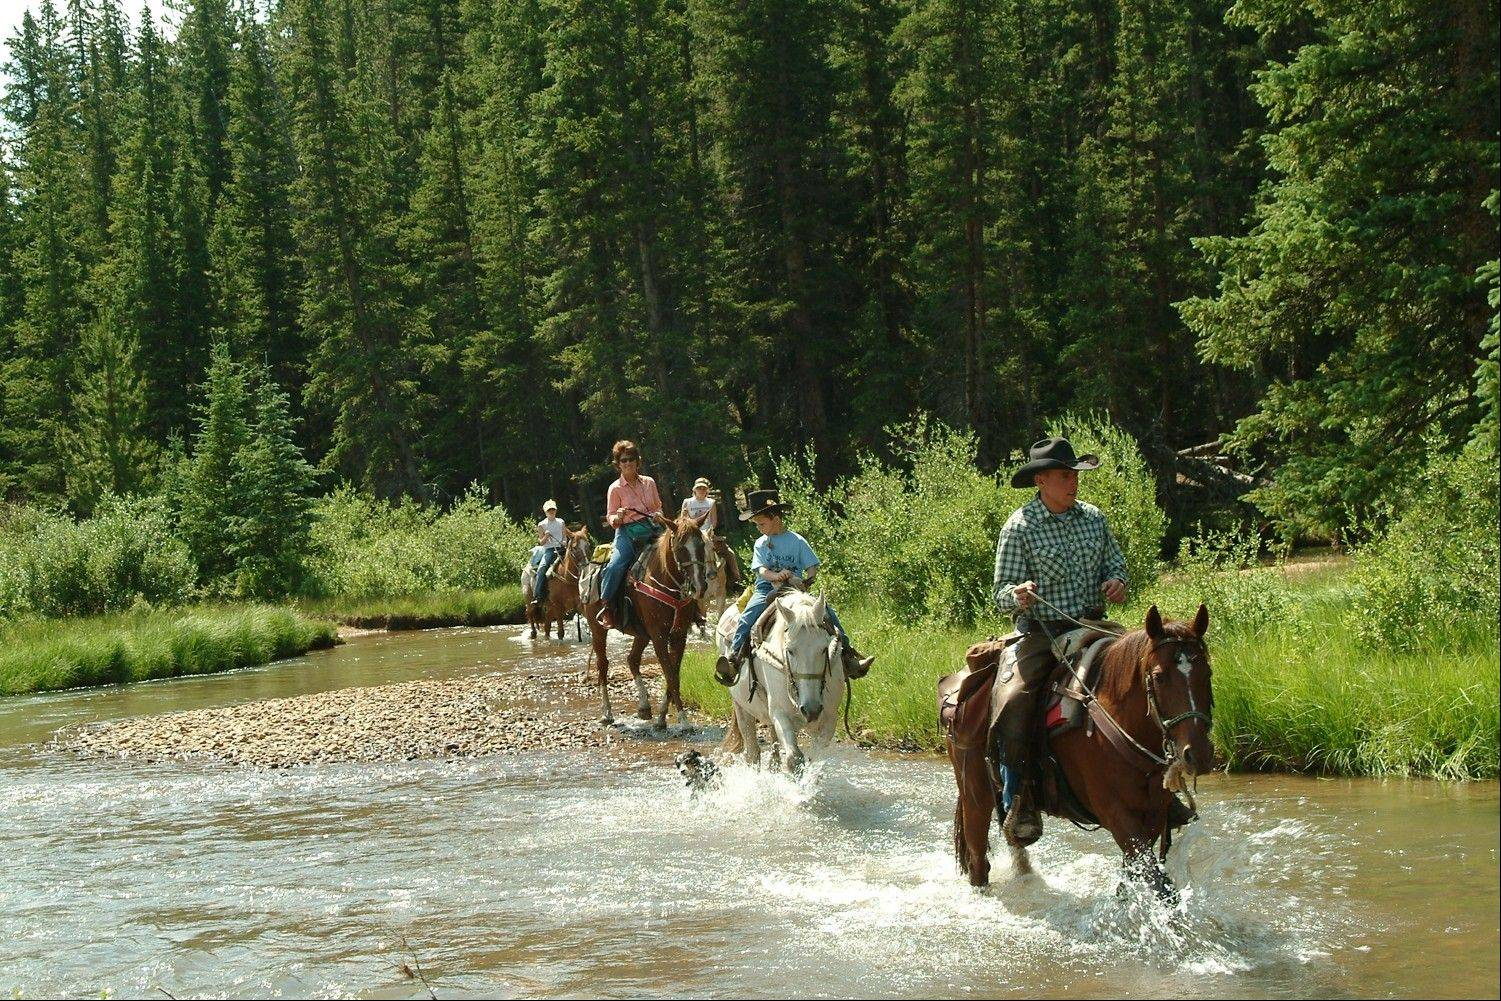 Tumbling River Ranch in Grant, Colo., offers traditional dude ranch activities like horseback riding, fly-fishing, swimming, rodeos and white-water rafting.